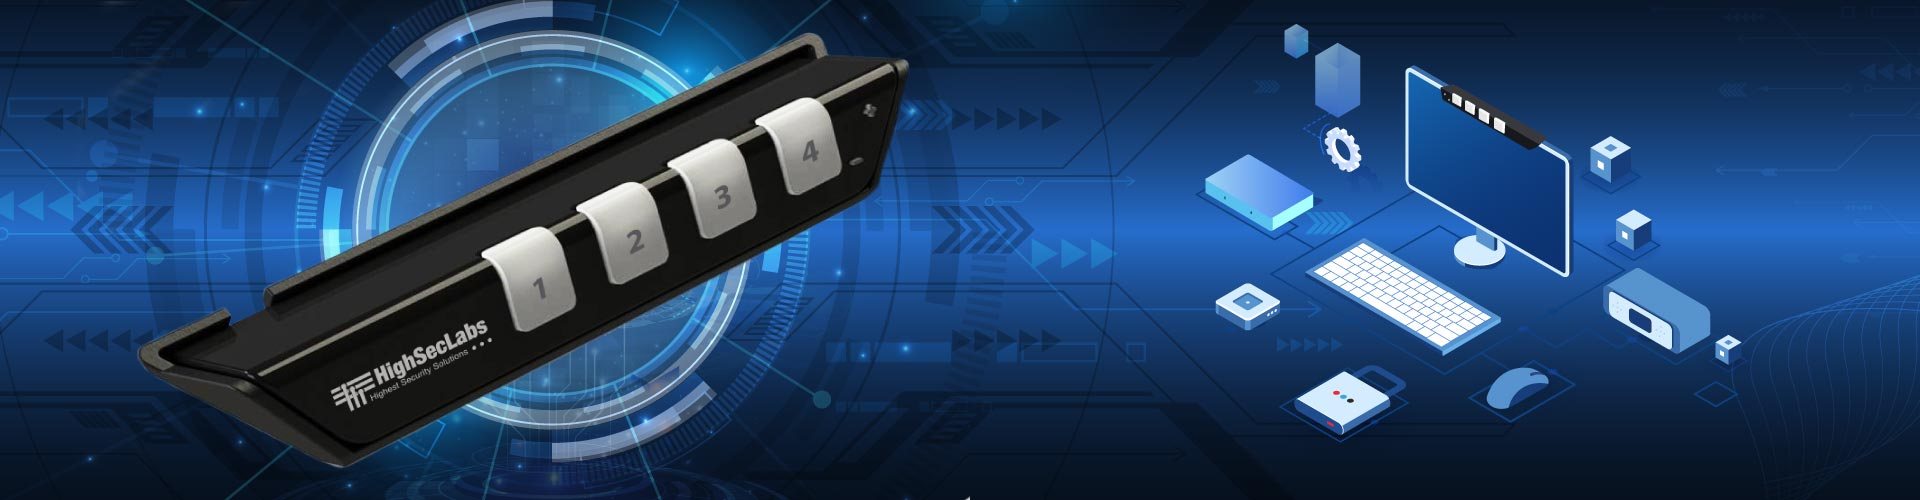 NewWebsite_Banner_AuxiliaryFrontPanel_02